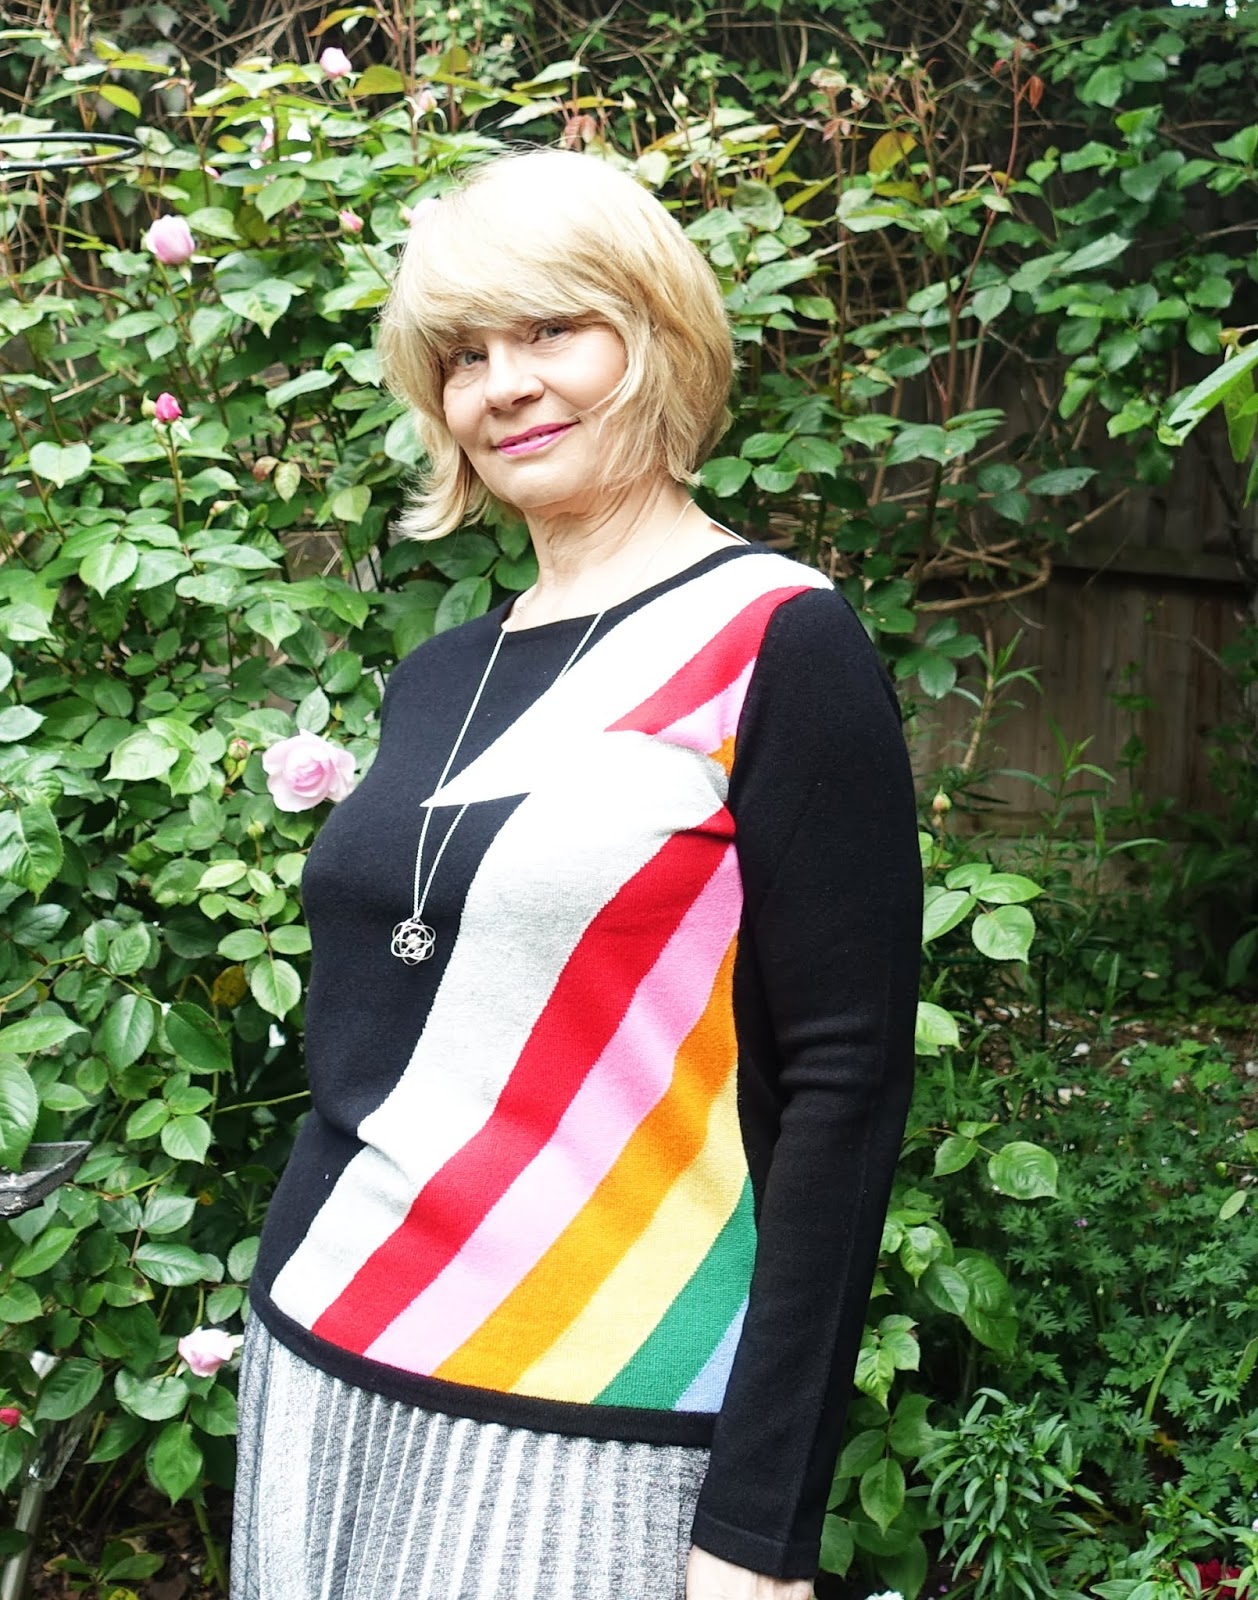 Black cashmere jumper with Bowie stripe worn in an English garden by a female style blogger in silver pleated skirt